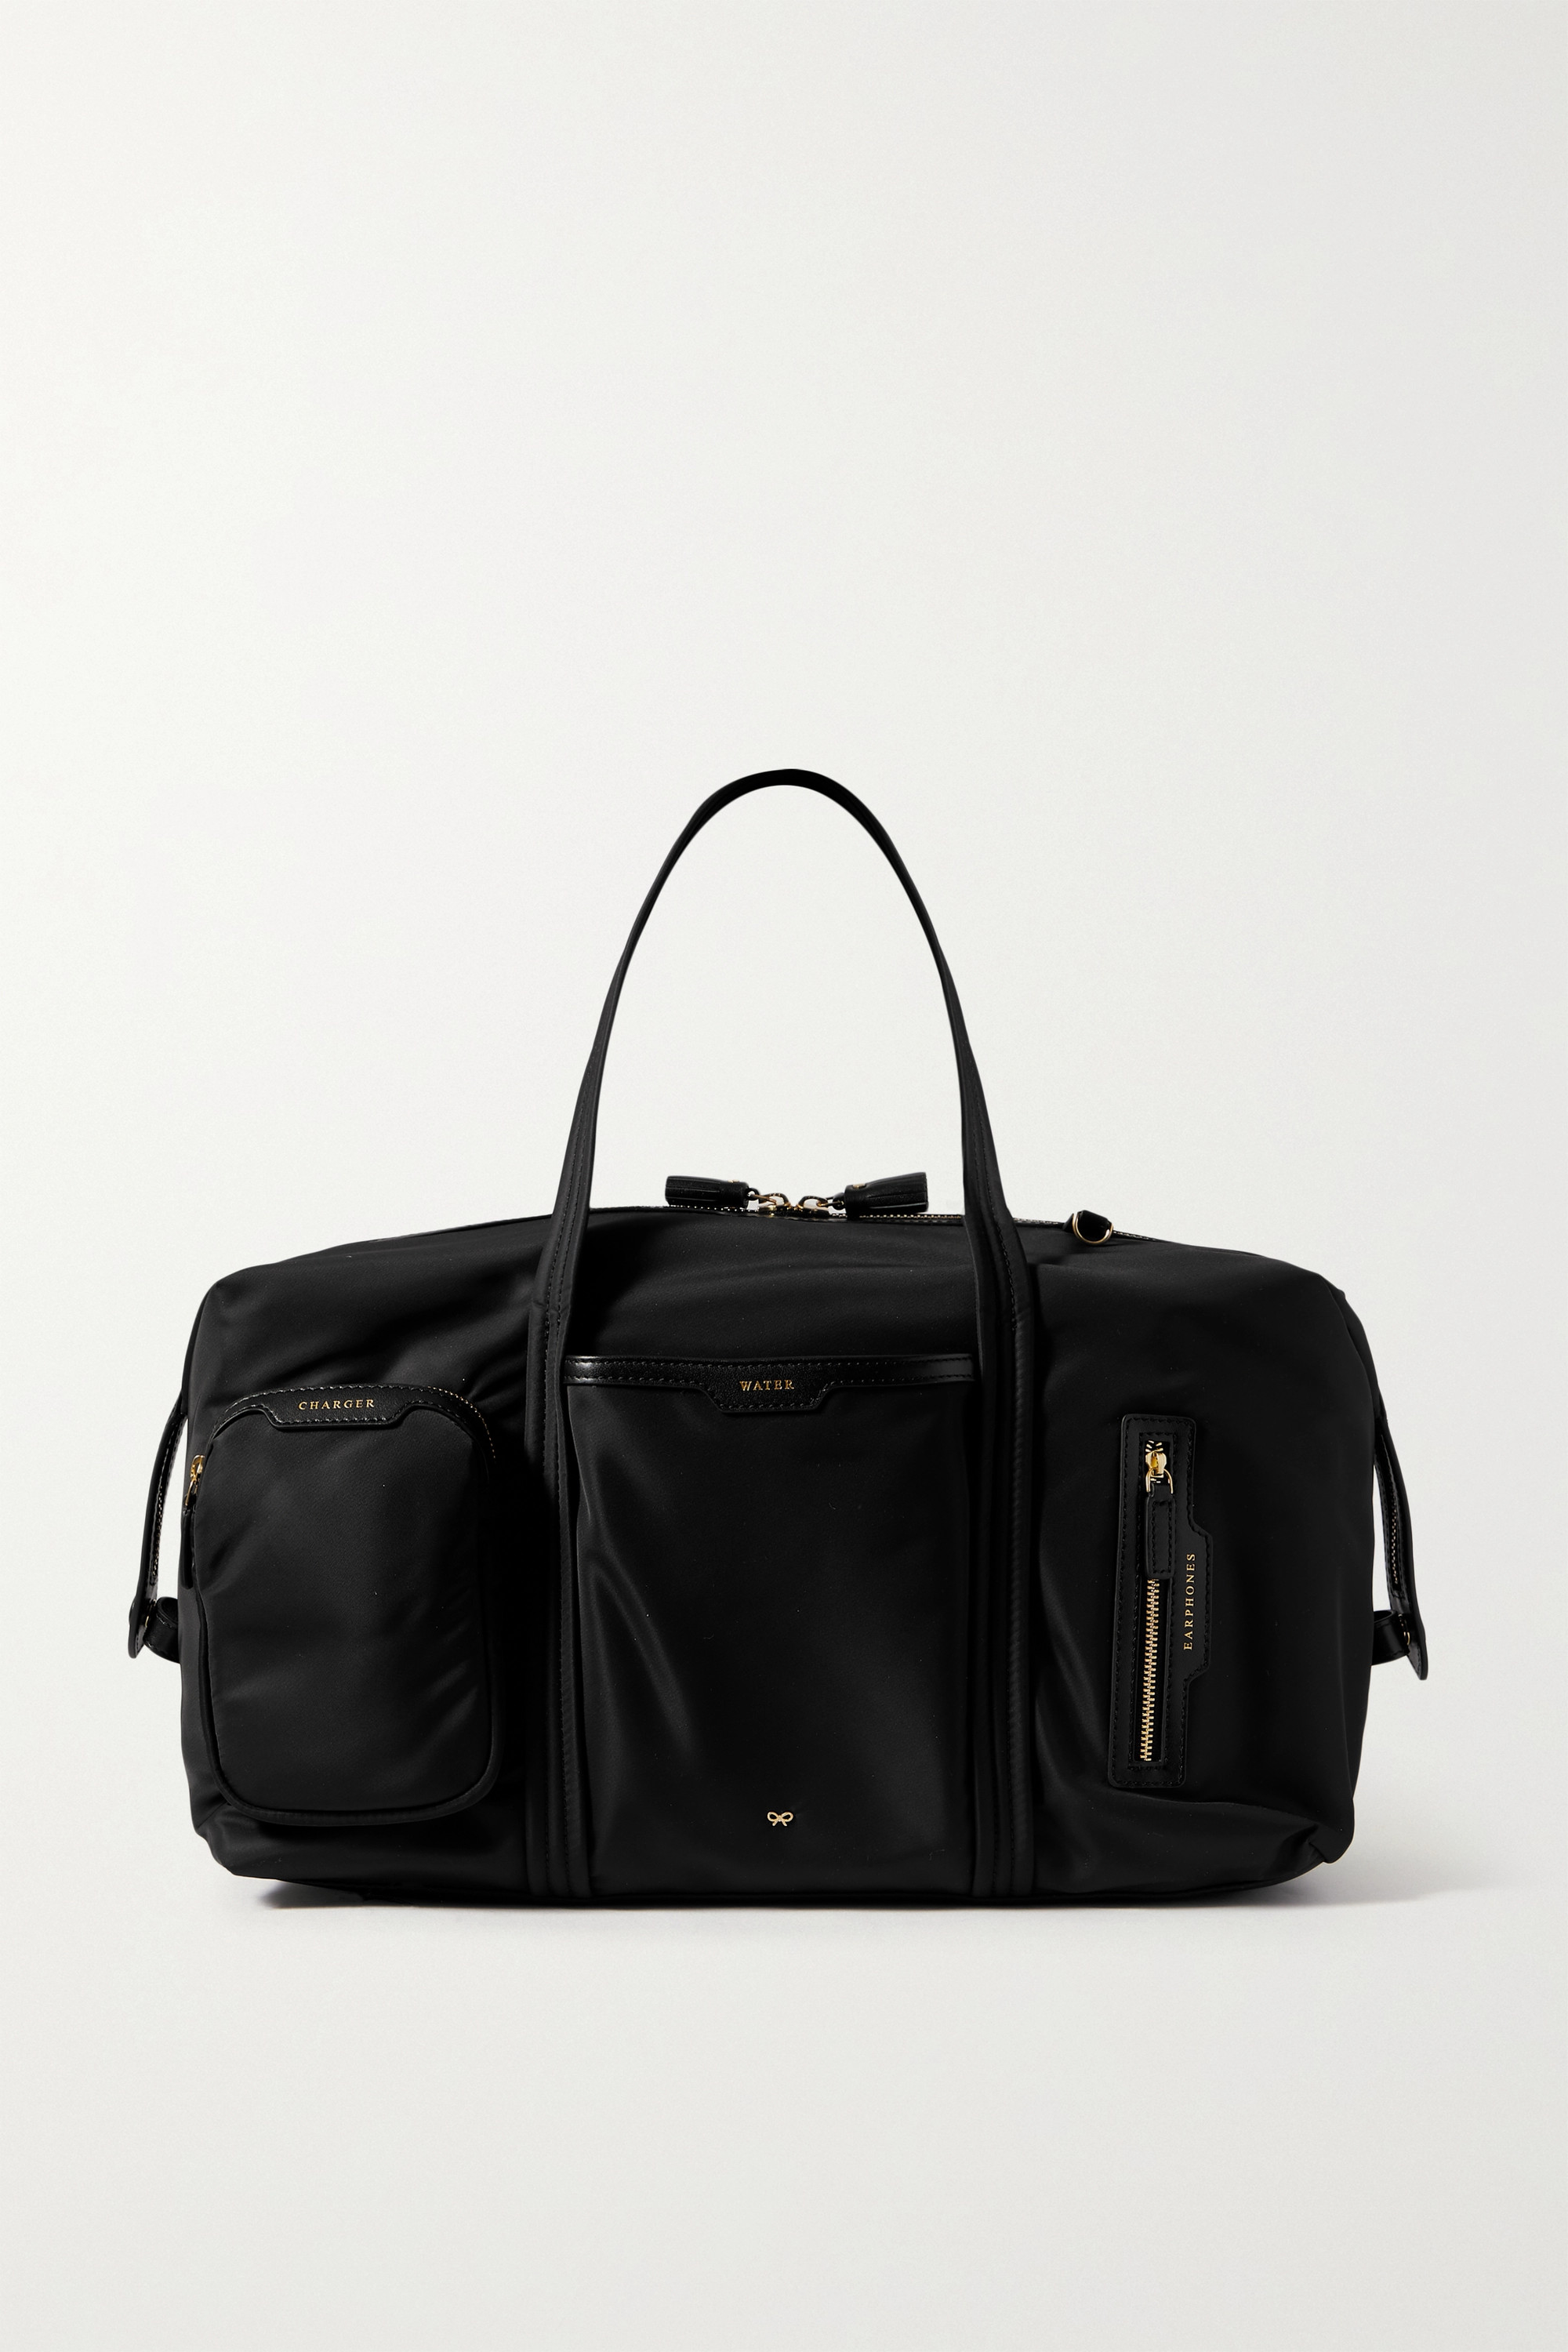 Anya Hindmarch - Inflight leather-trimmed recycled shell weekend bag